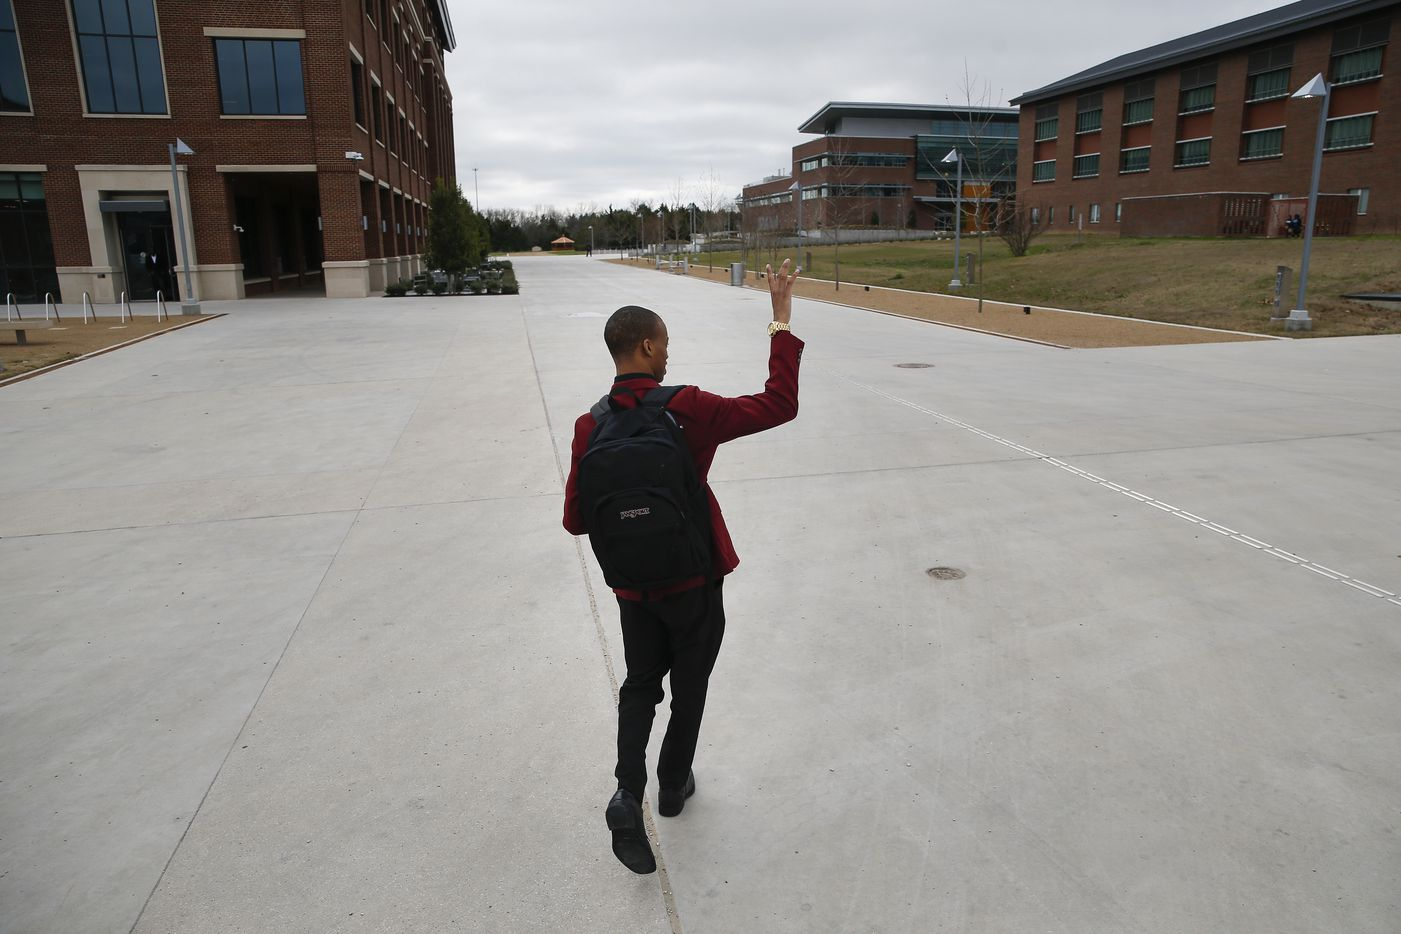 Jaylon Miller waves to a friend across the campus common area at the University of North Texas at Dallas on Wednesday, Jan. 29, 2020 in Dallas.